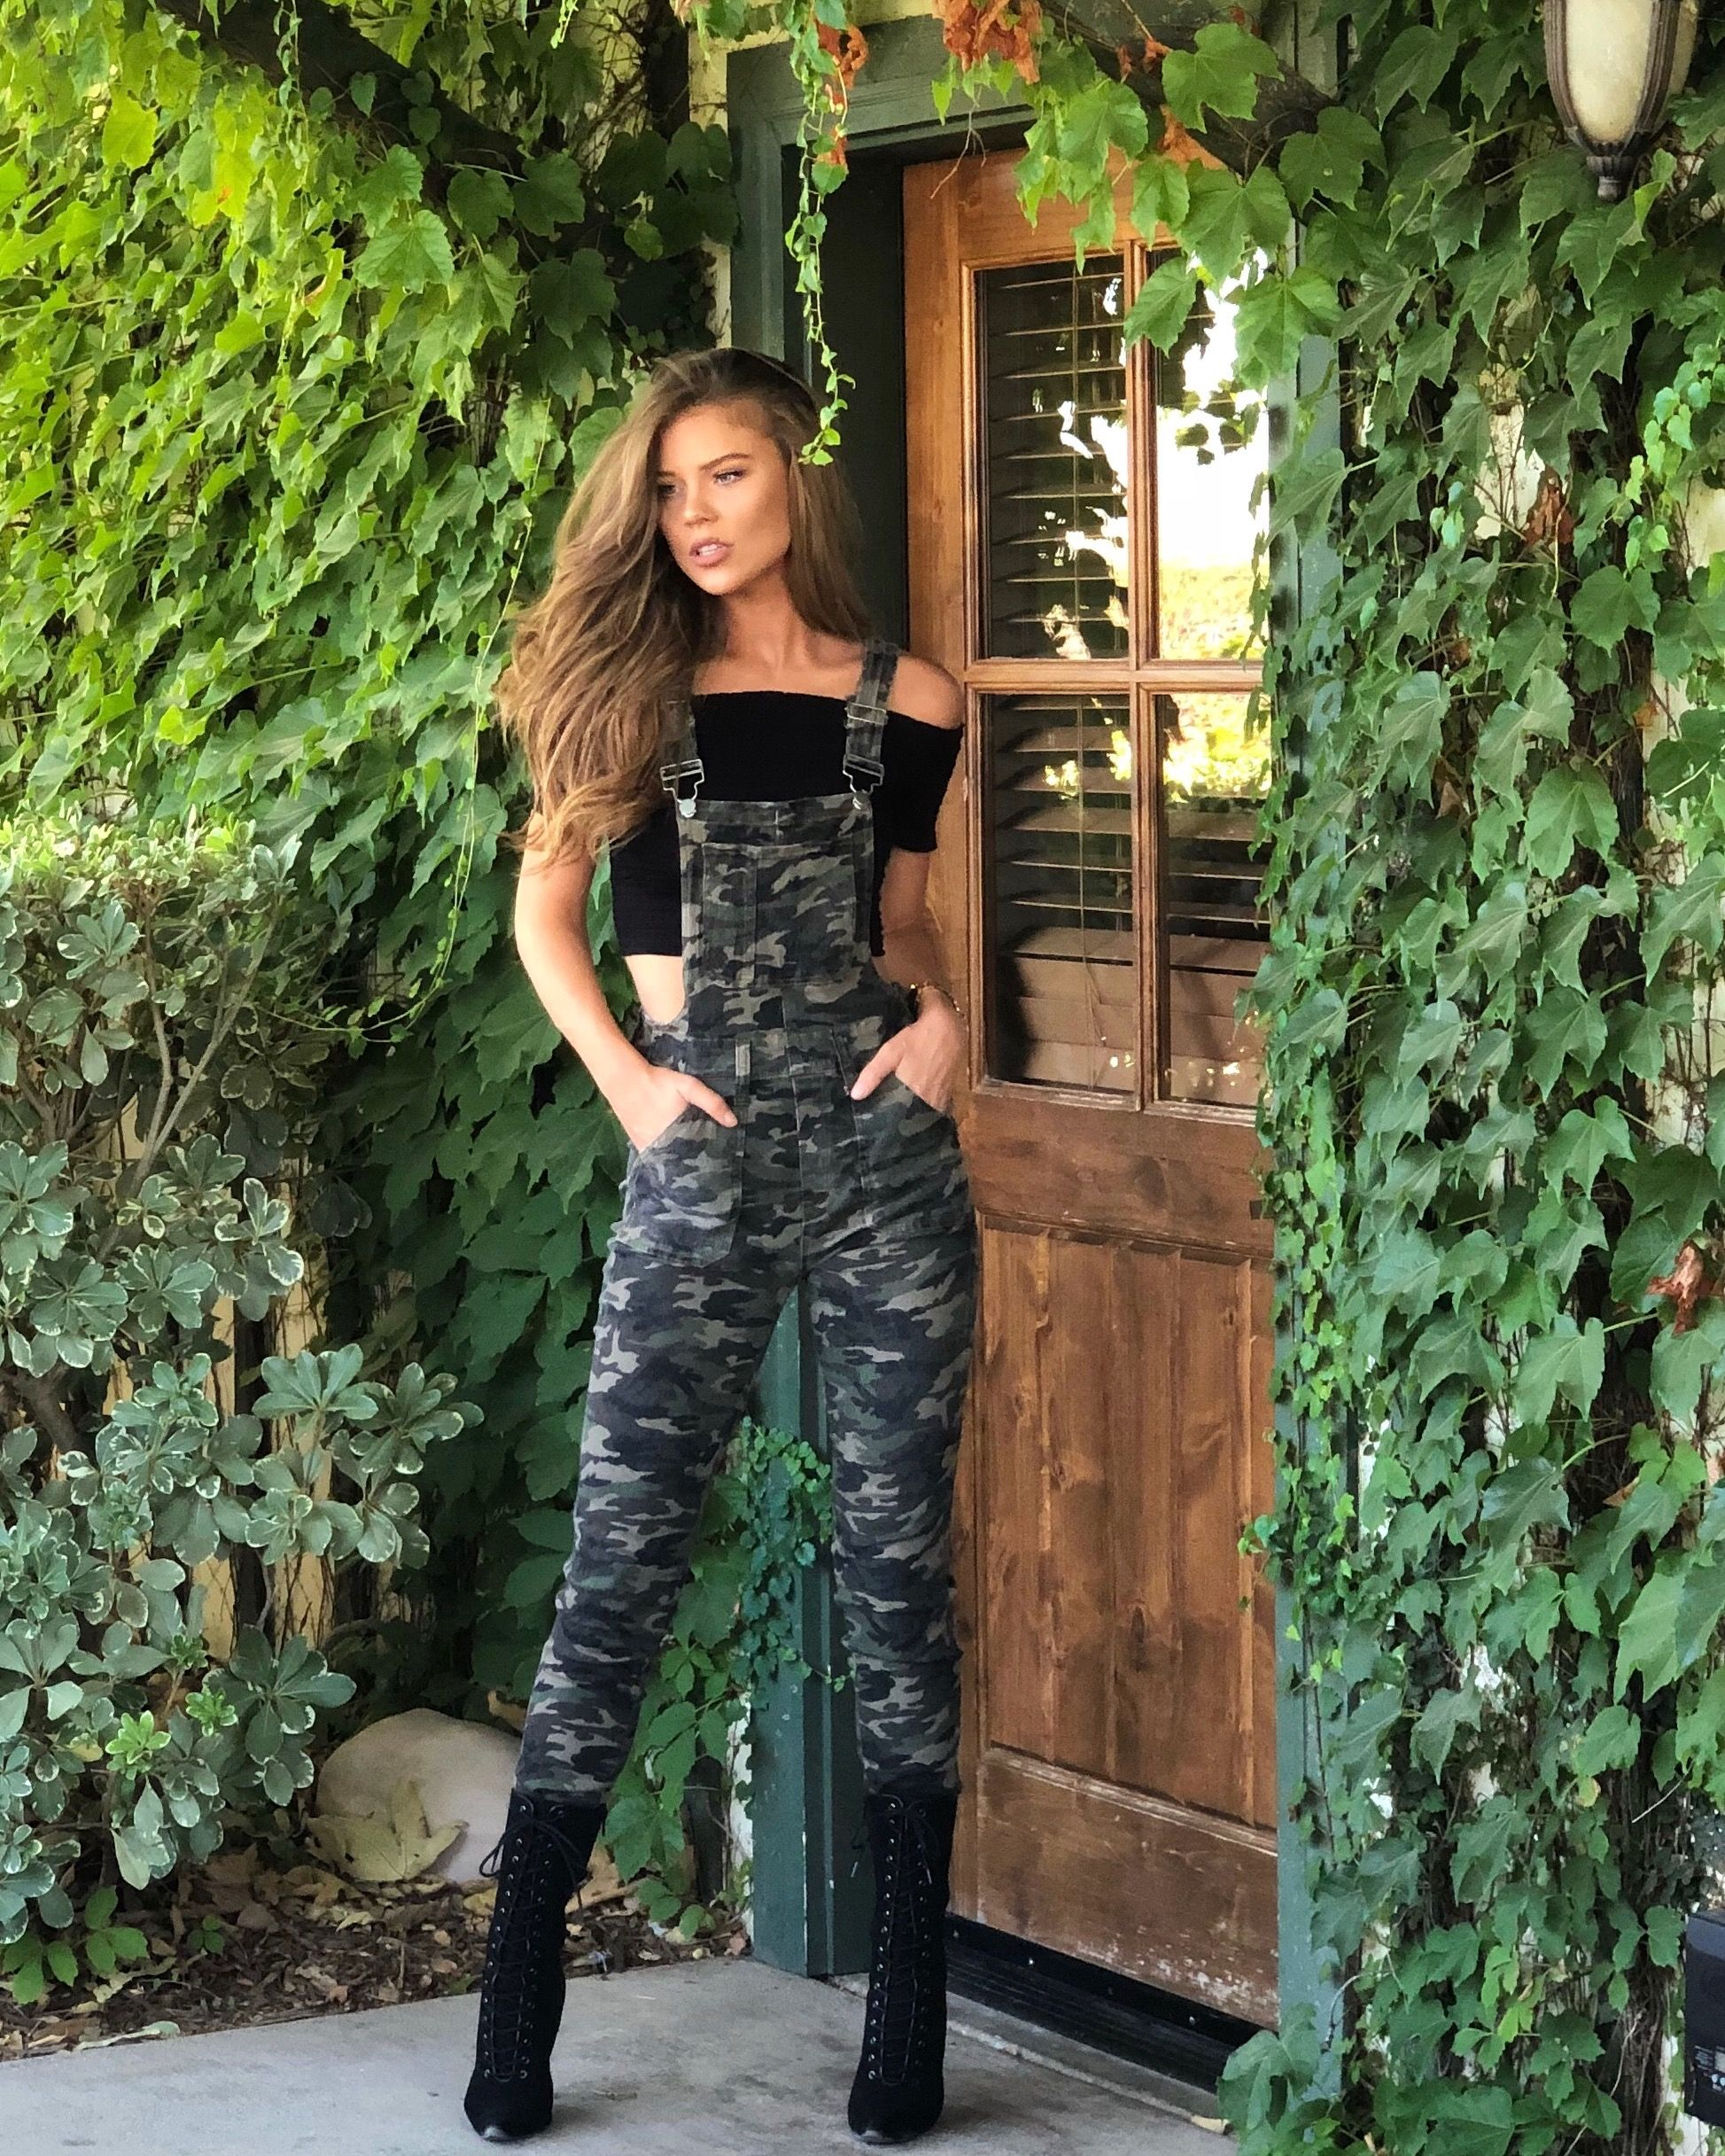 f0b6b77d4dcf5 Fitted Sexy Camo Overalls | RomperJill Overalls in 2019 | Overalls ...